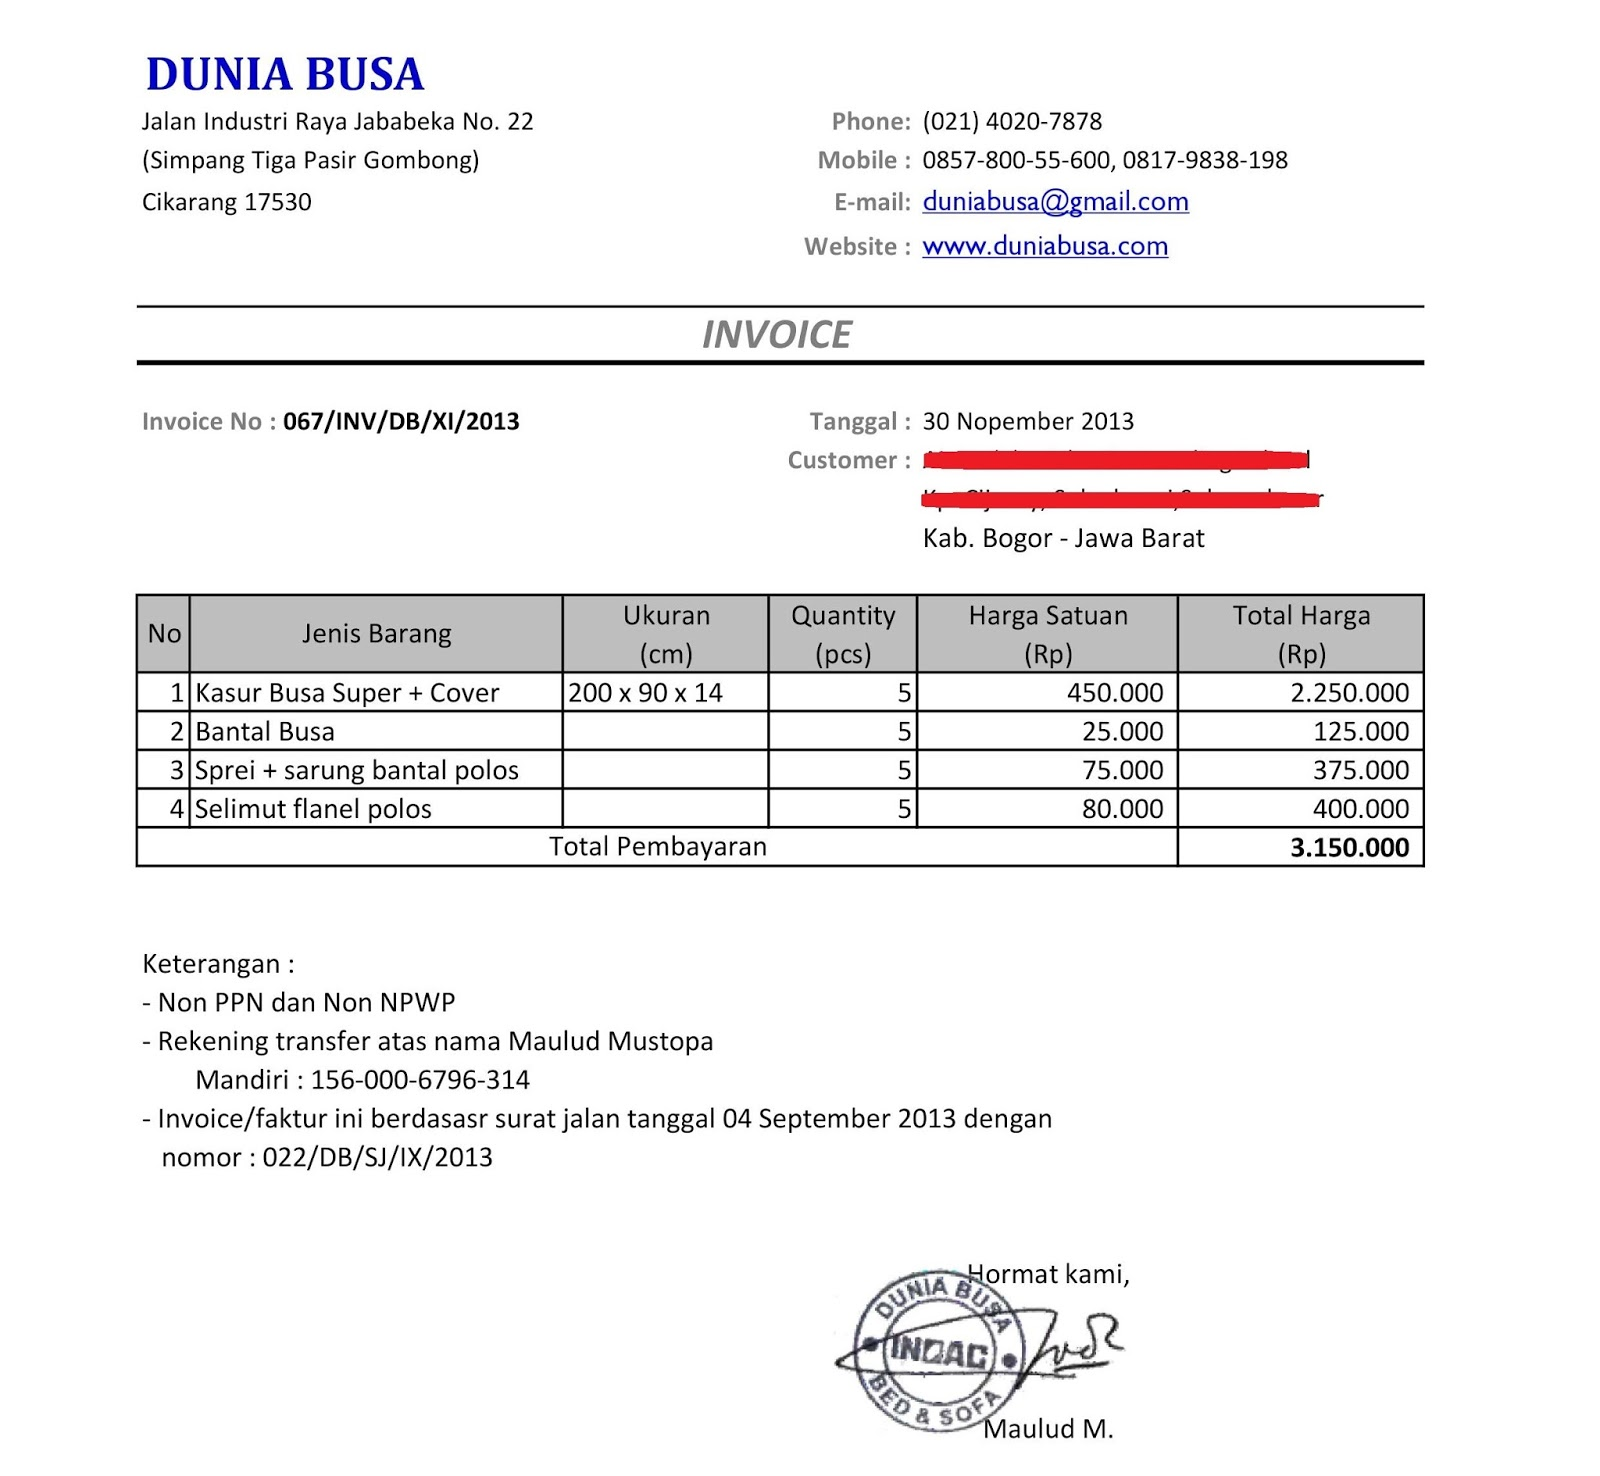 Centralasianshepherdus  Inspiring Free Invoice Online  Create Invoice Online  Invoice Template  With Goodlooking Contoh Format Invoice Atau Surat Tagihan  Brankas Arsip  Free Invoice Online With Alluring Processing Invoices In Sap Also Dealer Invoice Prices In Addition Proventure Invoices And Ford Raptor Invoice Price As Well As Seller Invoice Ebay Additionally Standard Invoice Format Excel From Sklepco With Centralasianshepherdus  Goodlooking Free Invoice Online  Create Invoice Online  Invoice Template  With Alluring Contoh Format Invoice Atau Surat Tagihan  Brankas Arsip  Free Invoice Online And Inspiring Processing Invoices In Sap Also Dealer Invoice Prices In Addition Proventure Invoices From Sklepco